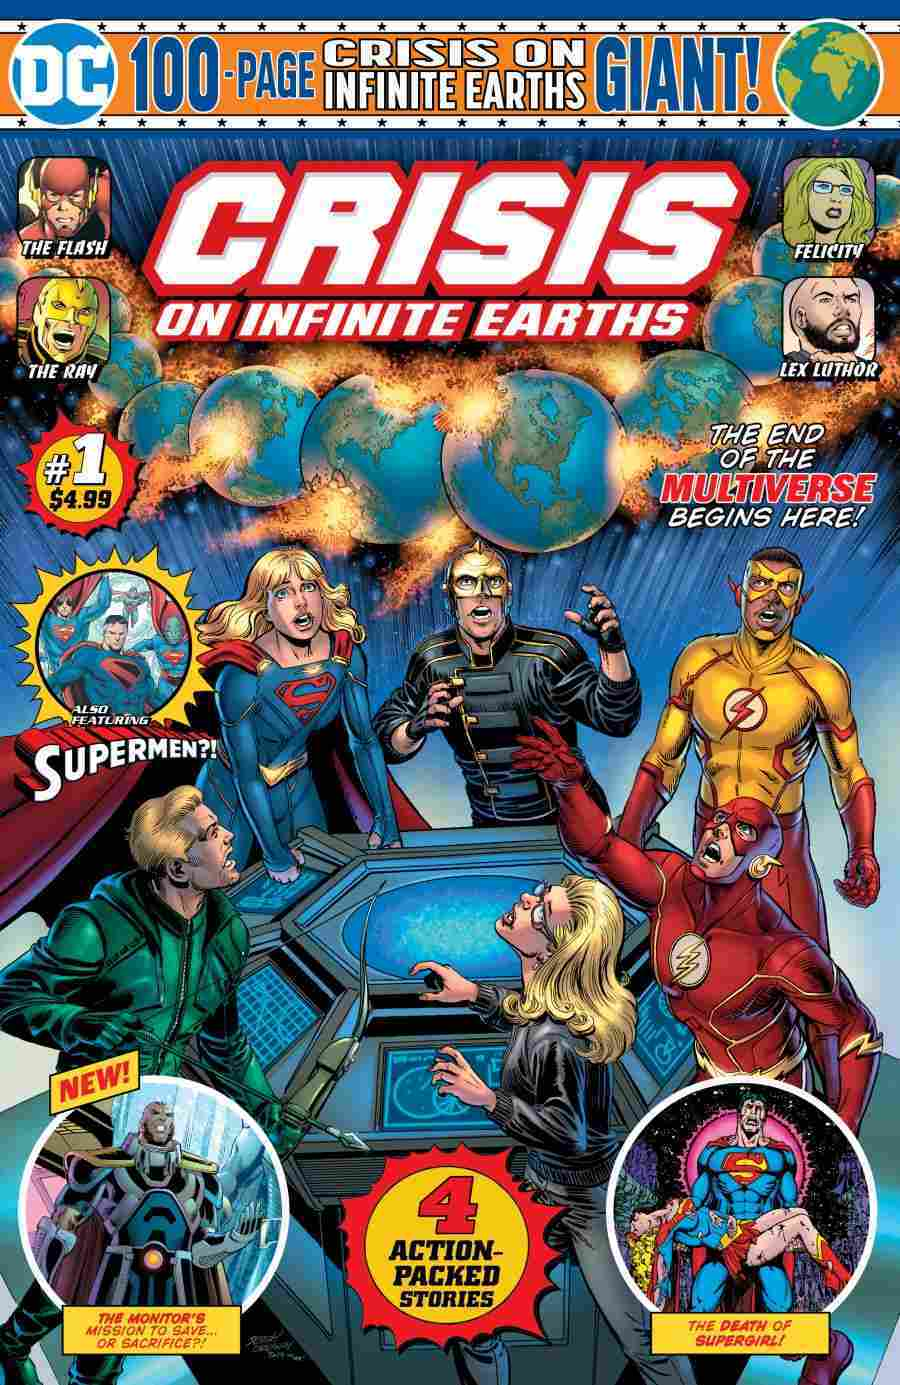 Crisis on Inifnite Earths Giant #1